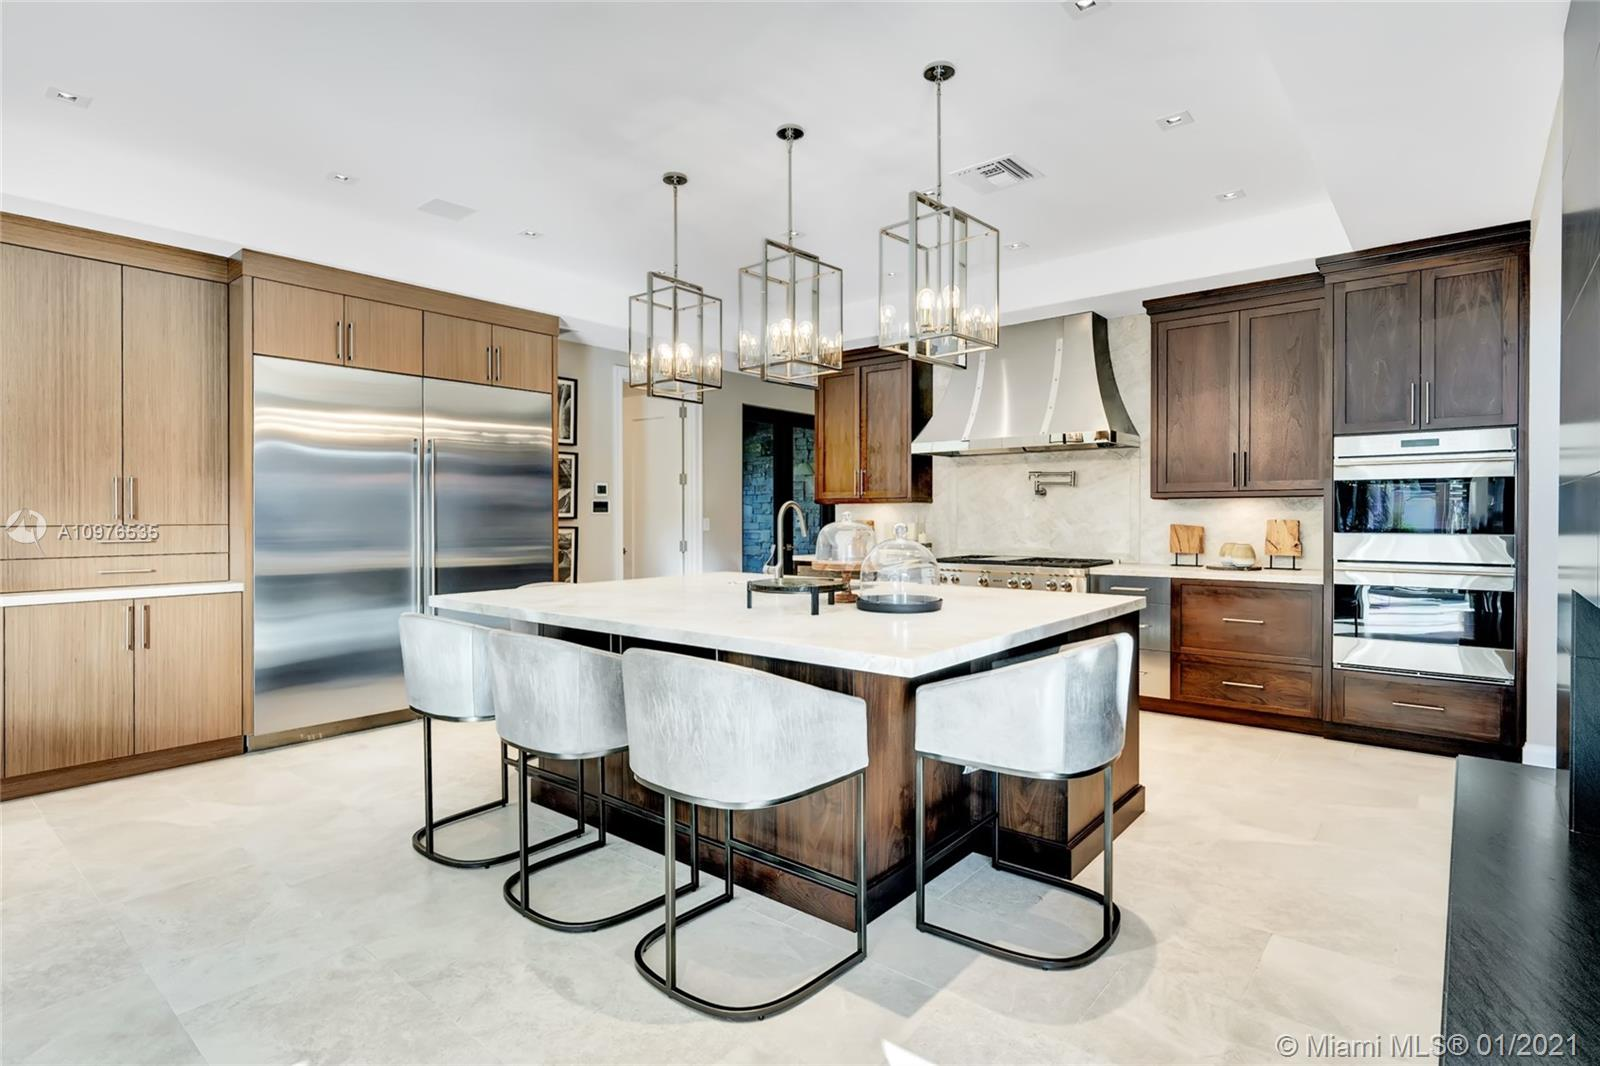 Wolf appliances, quartz counter tops, pot filler faucet, sub-zero refrigerator, all carefully designed to make this a place for the family to congregate and enjoy.